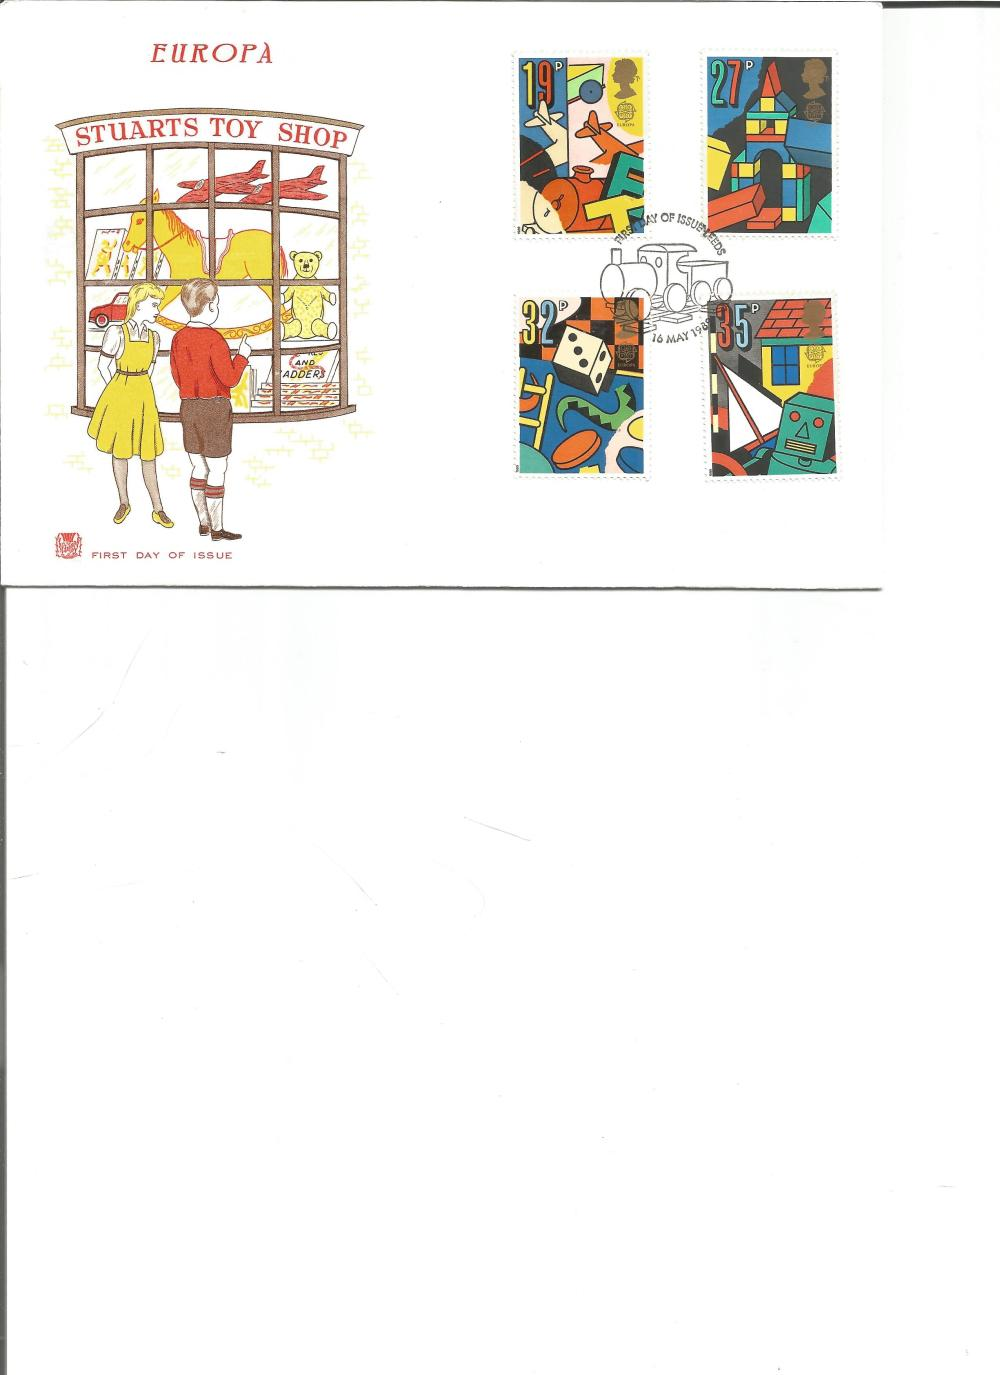 FDC Europa Stuarts Toy Shop c/w set four commemorative stamps PM First Day of Issue 16th May 1989.